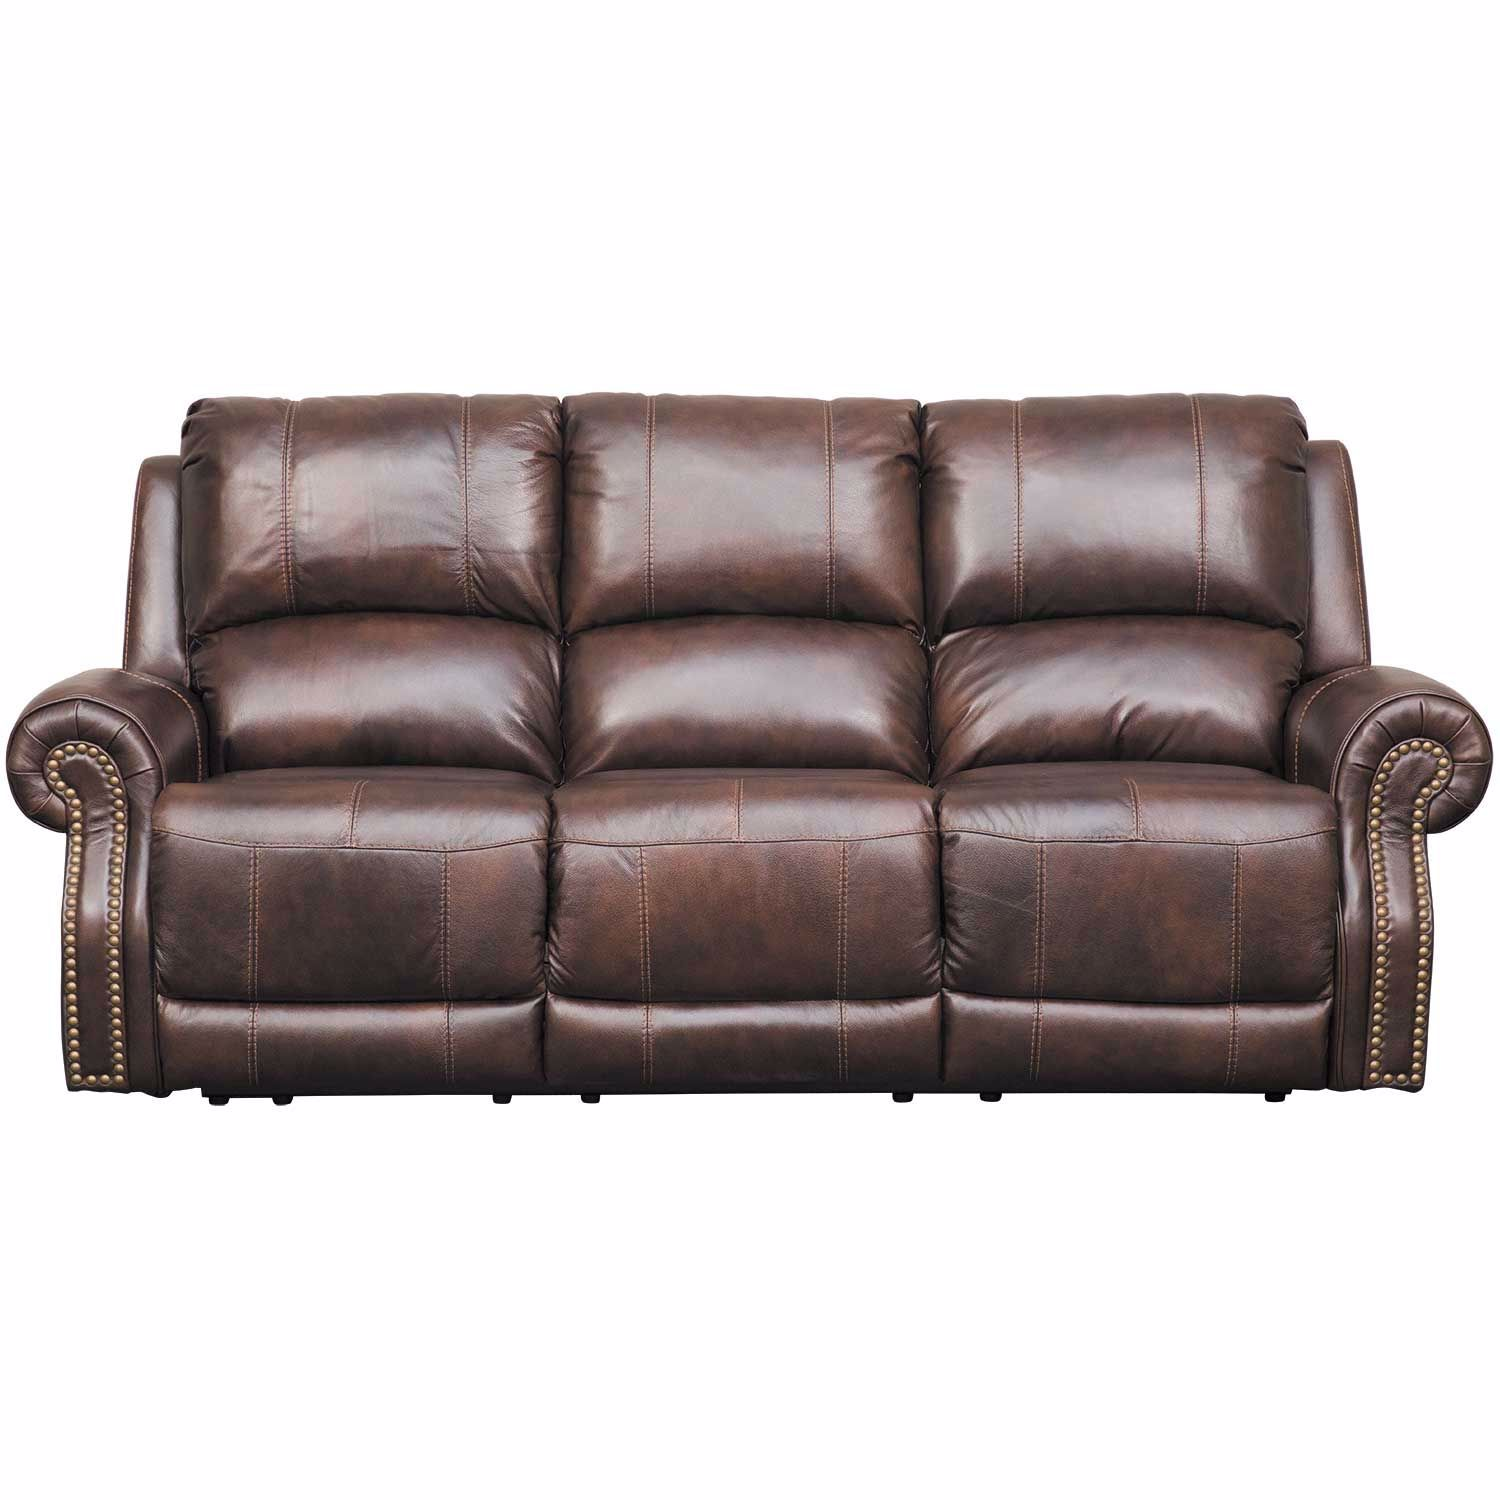 Buncrana Italian Leather Power Reclining Sofa with Adjustable Headrest